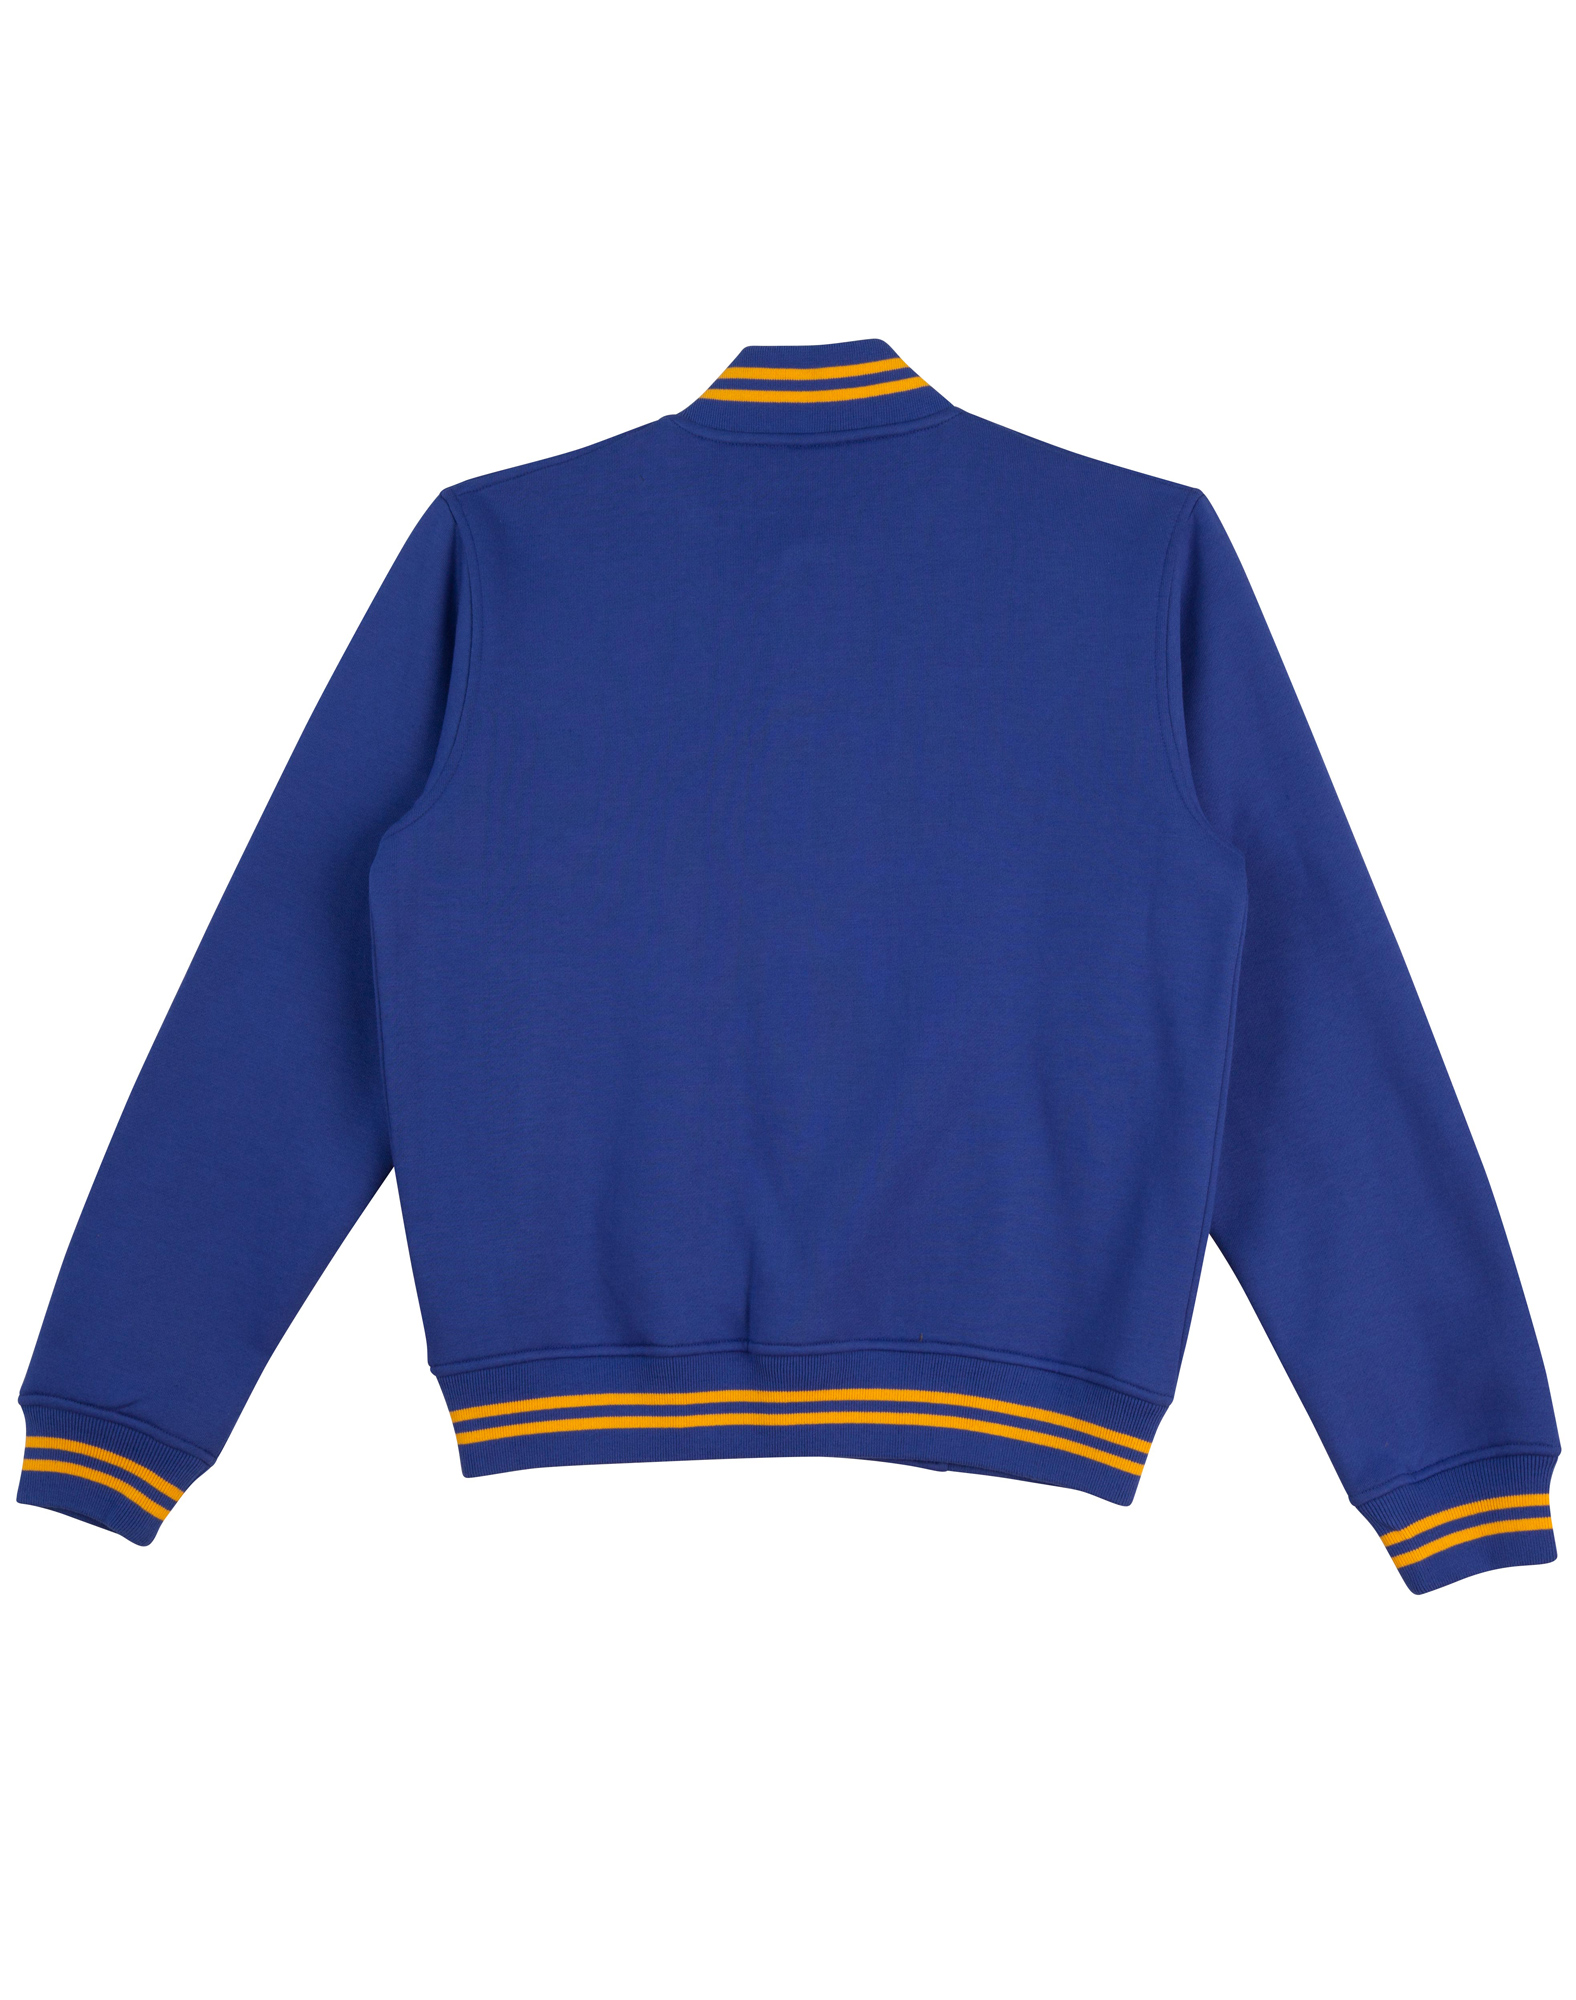 FL11K FLEECE LETTERMAN Kids'